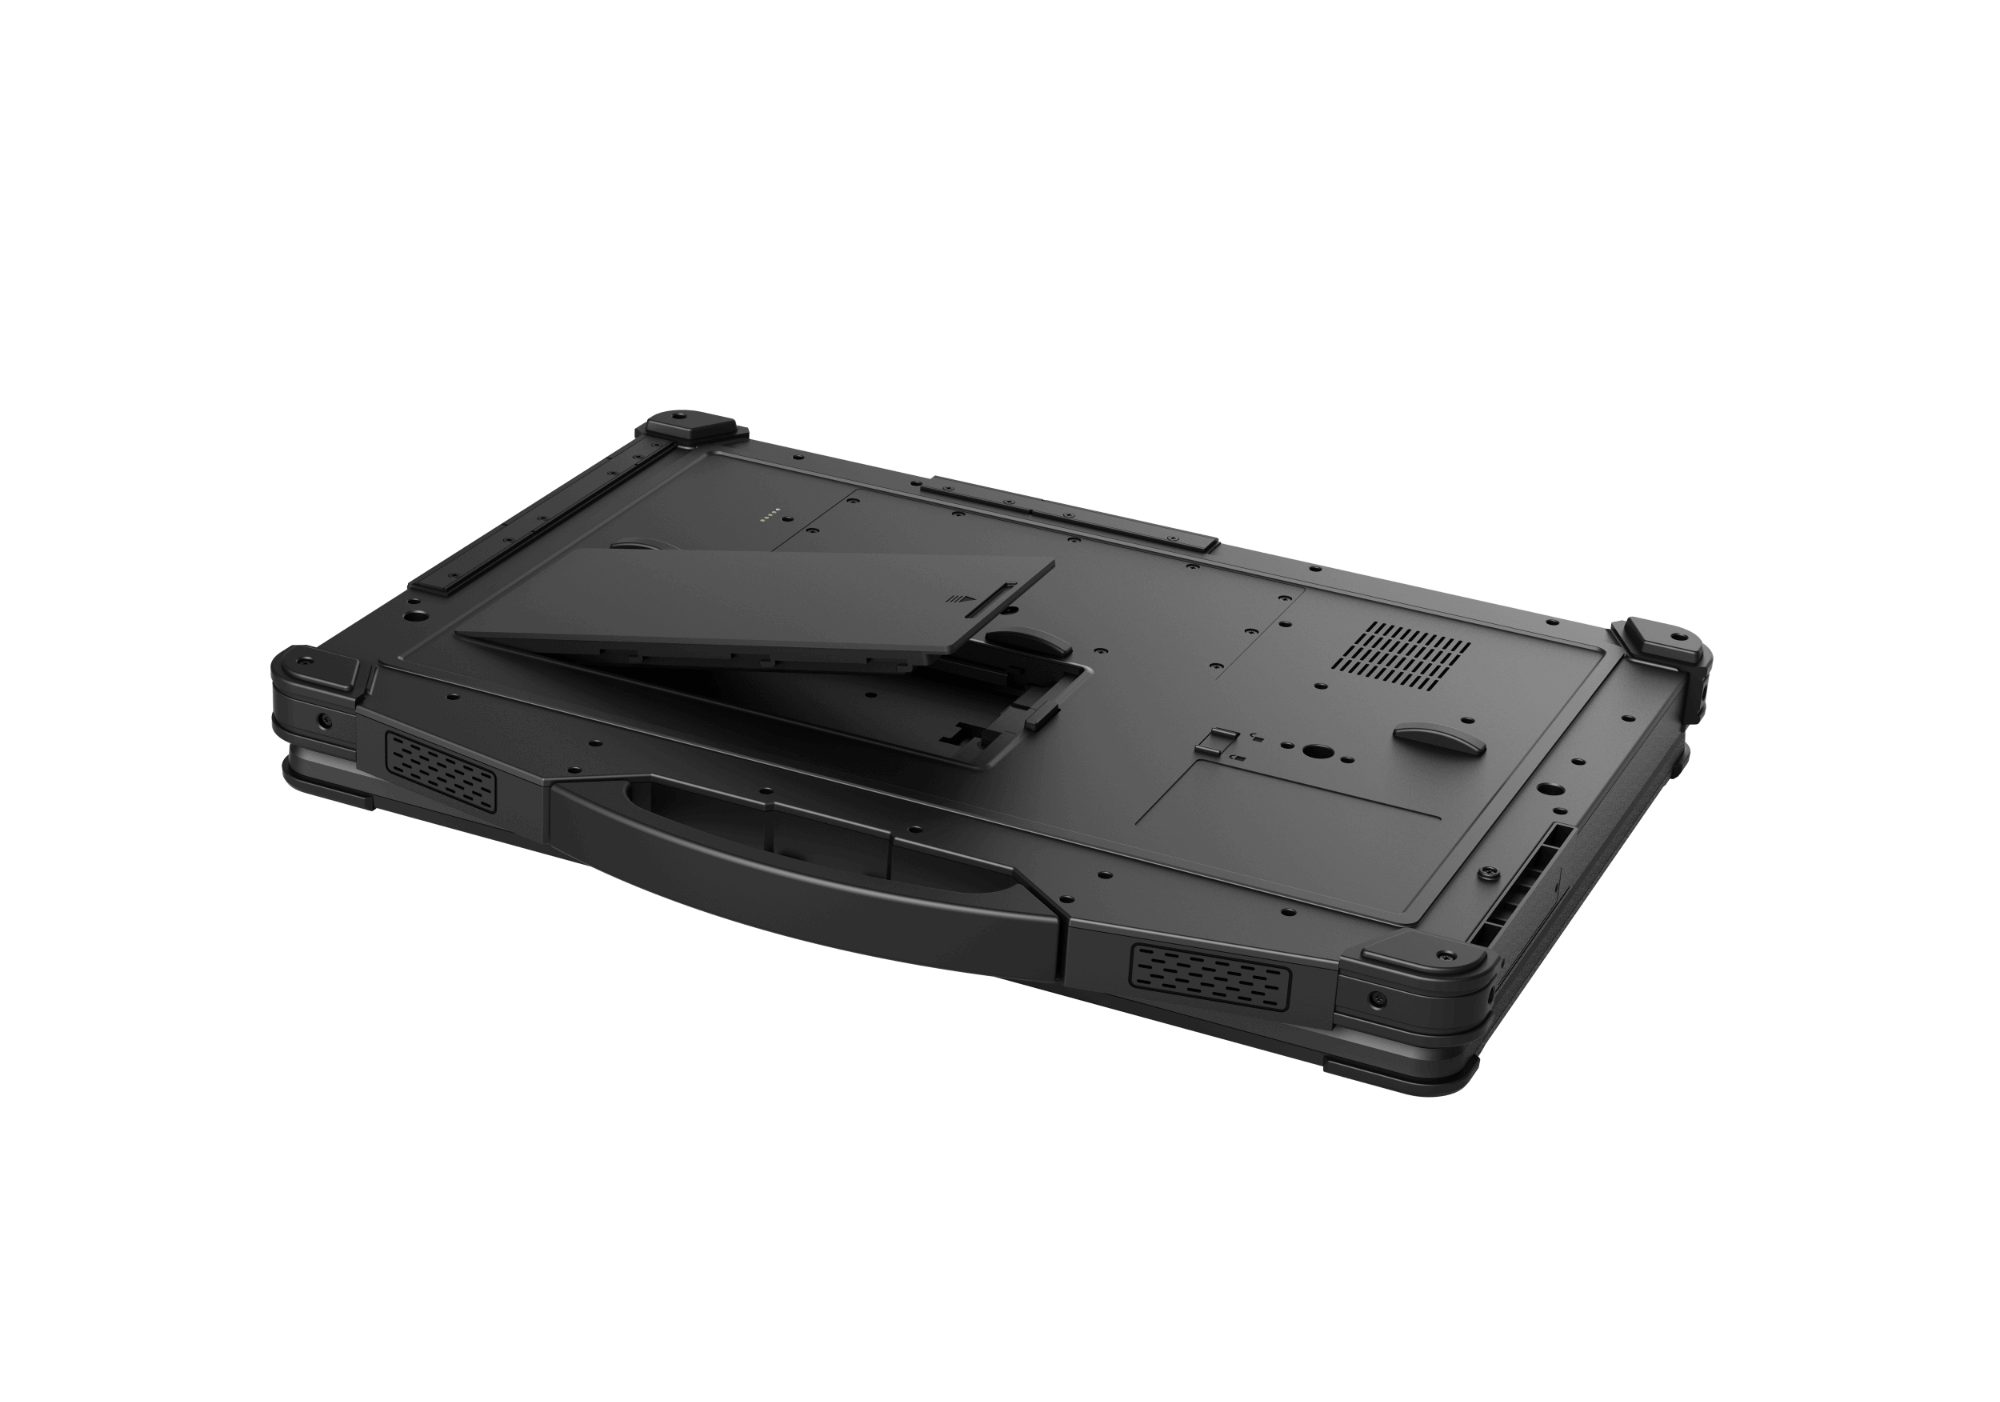 Bottom view of rugged notebook with battery outside